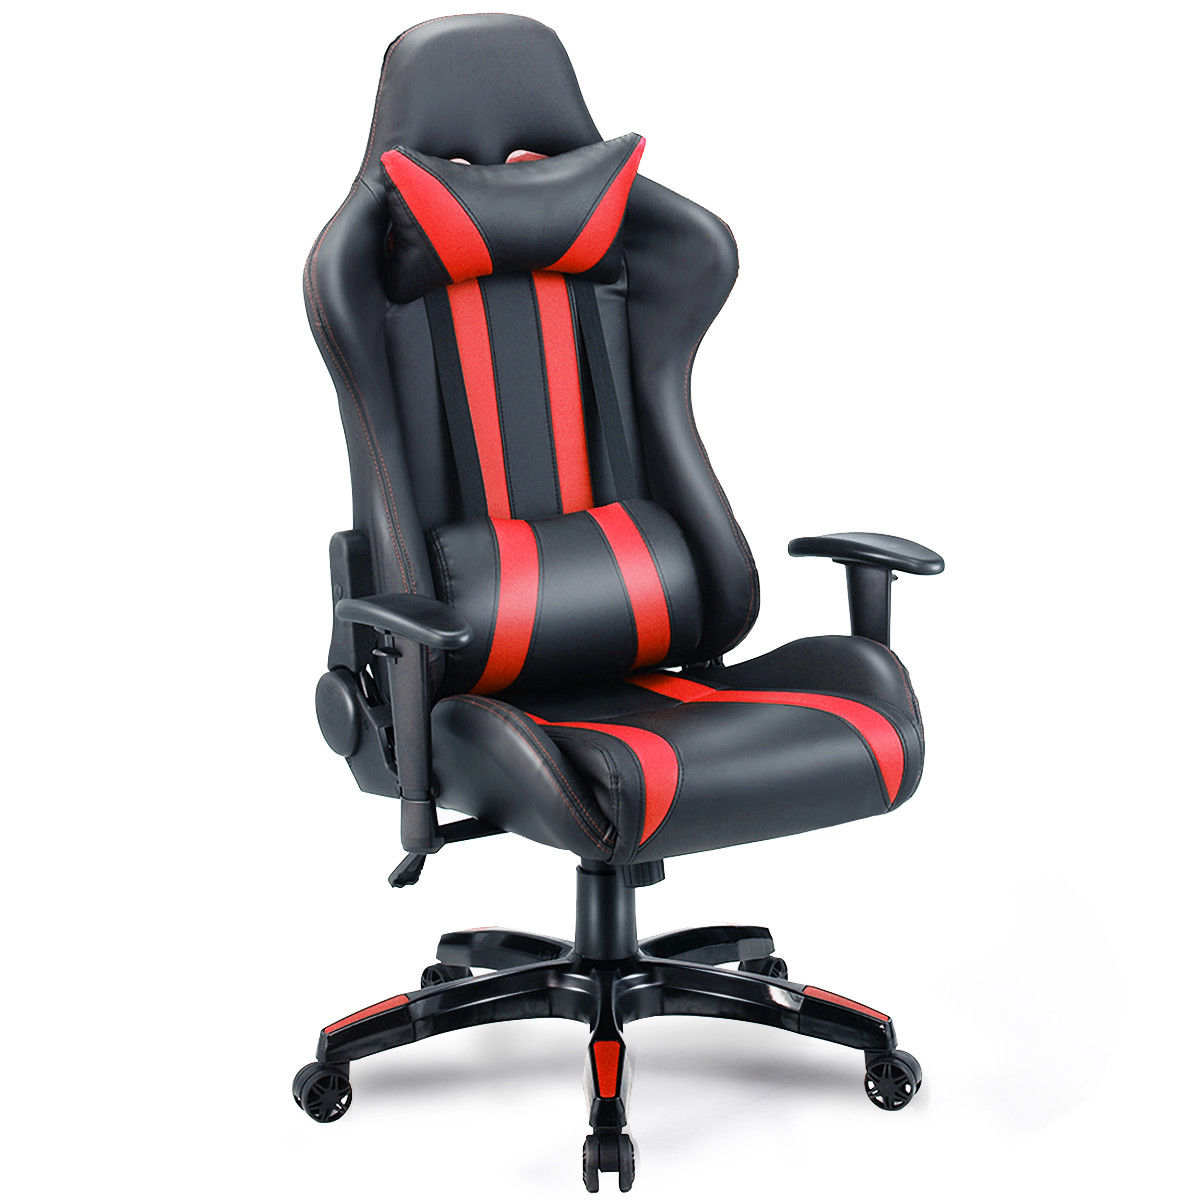 computer chairs for gaming 500 lb office chair costway executive racing style high back reclining black red